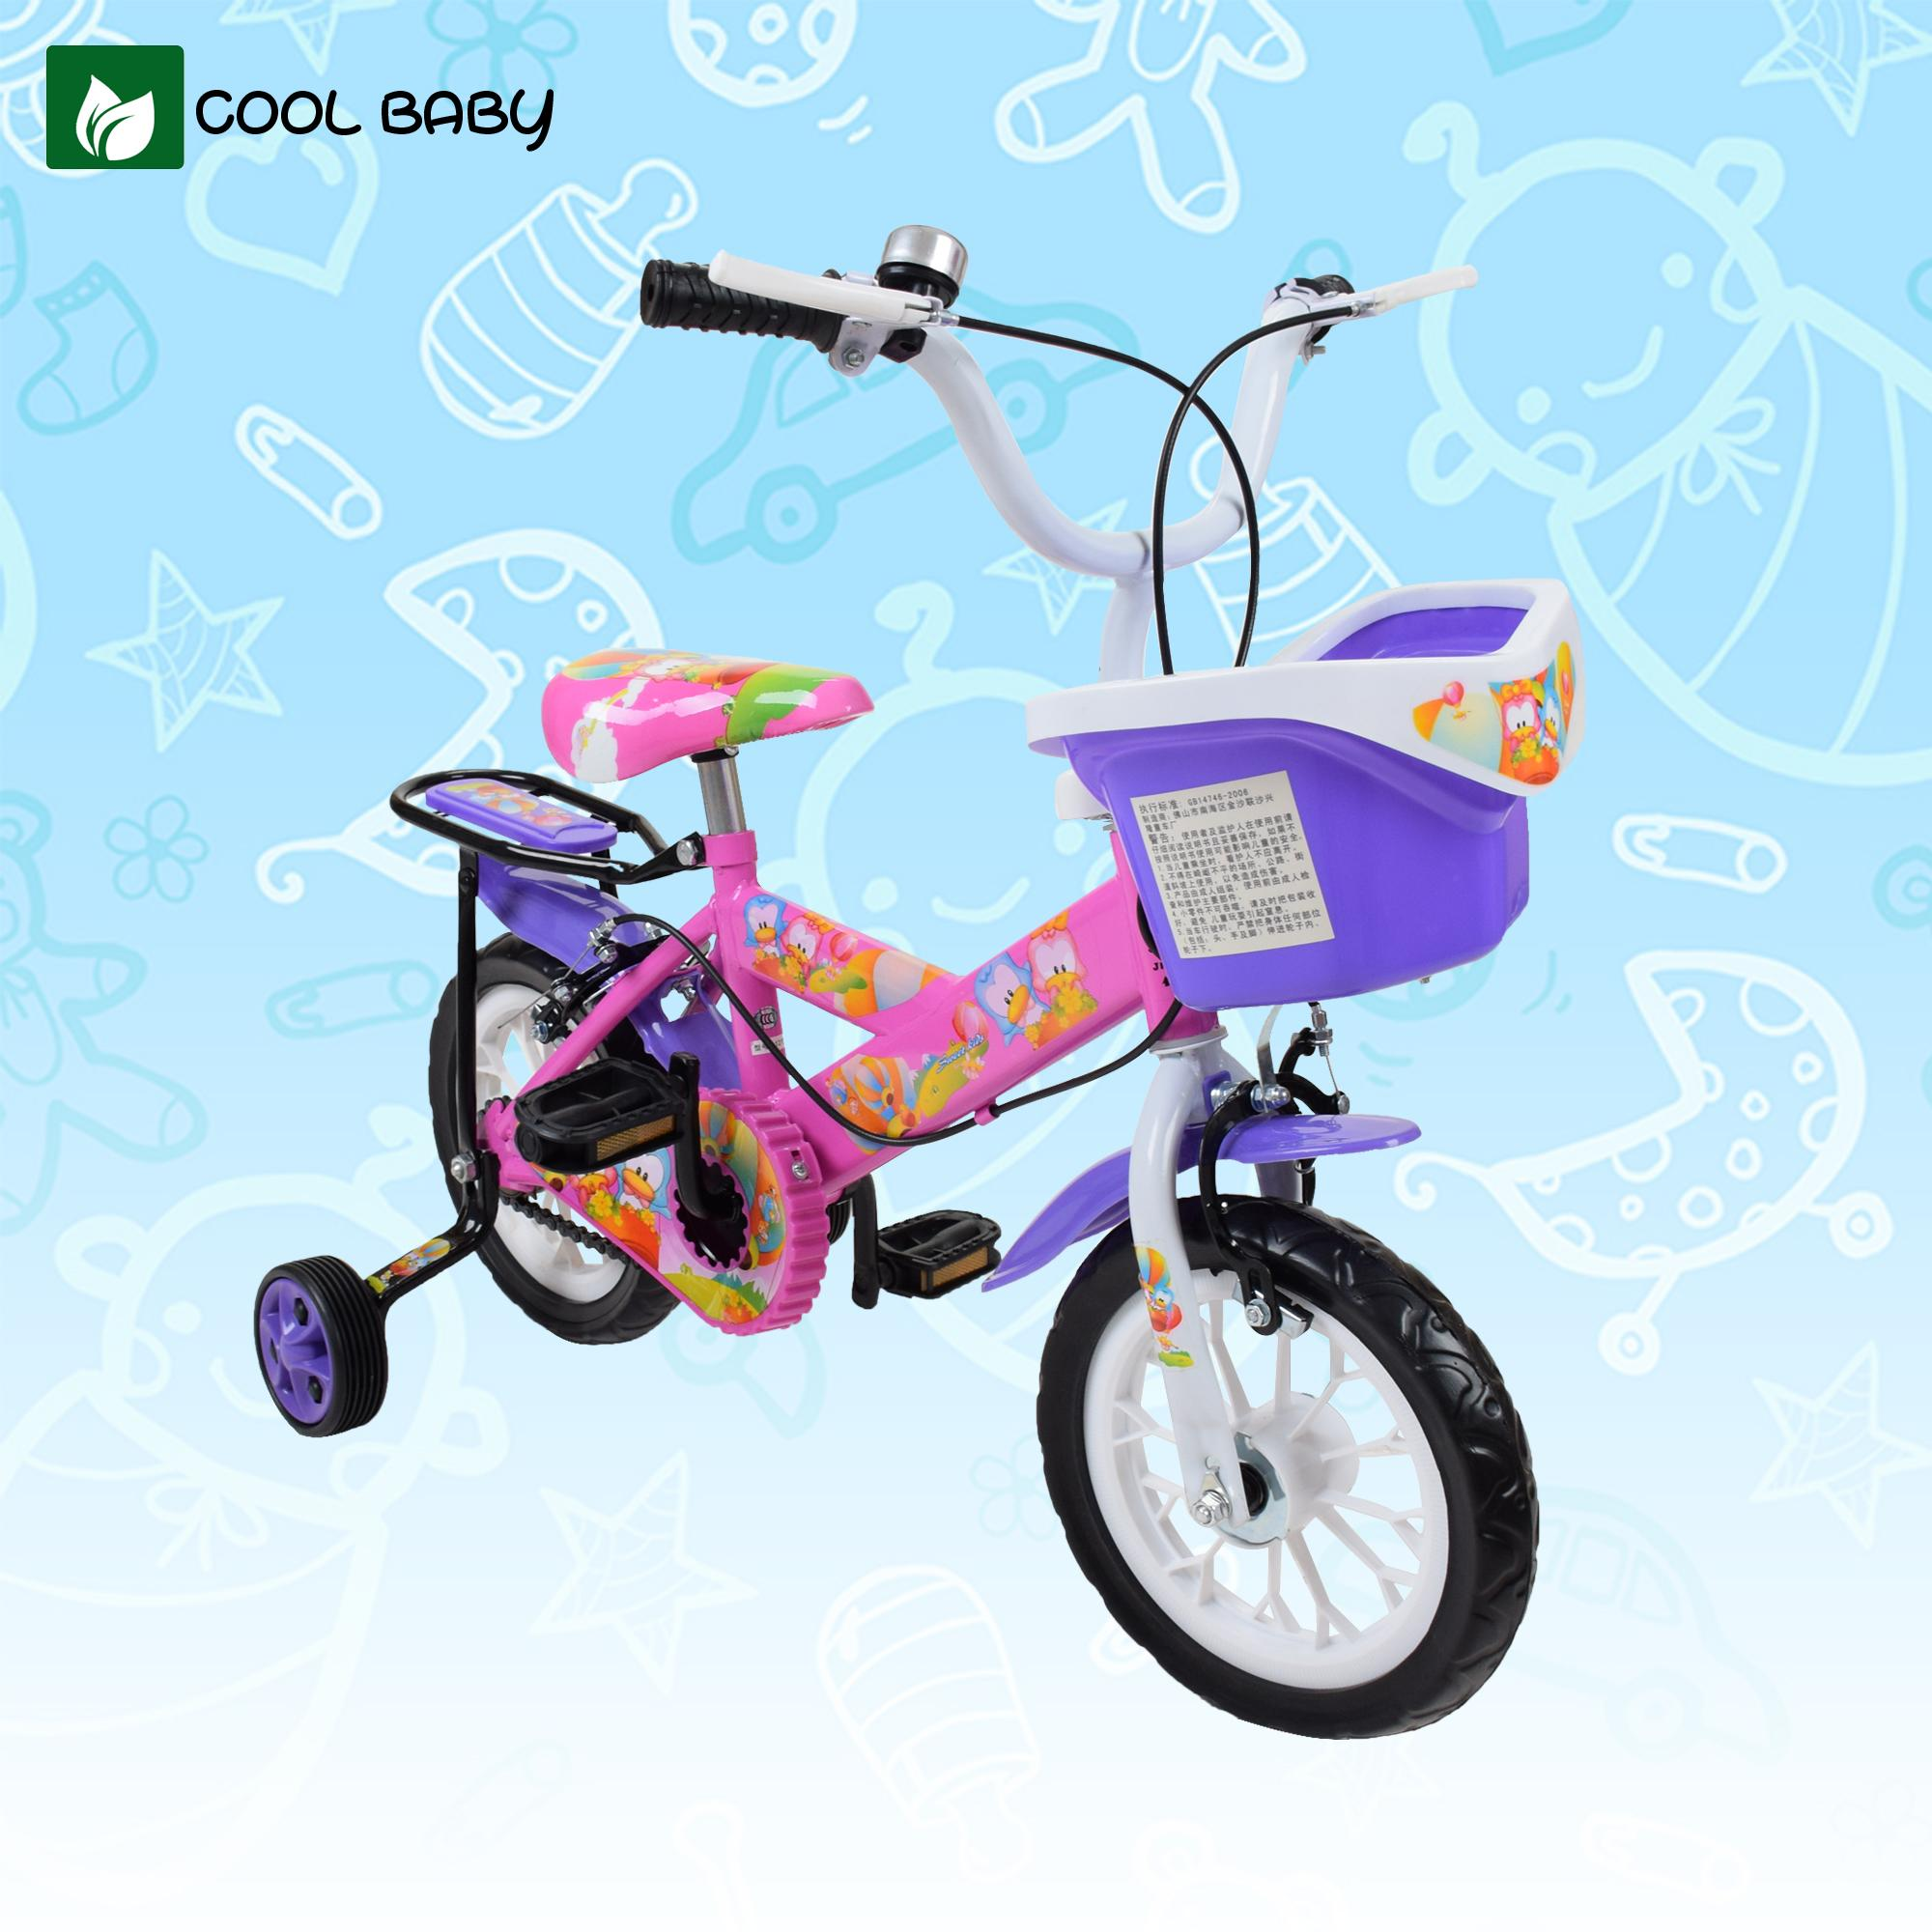 Bike Basket Big W Cool Baby Children Bicycle G Kids 1217 Kids Bike With Front Basket